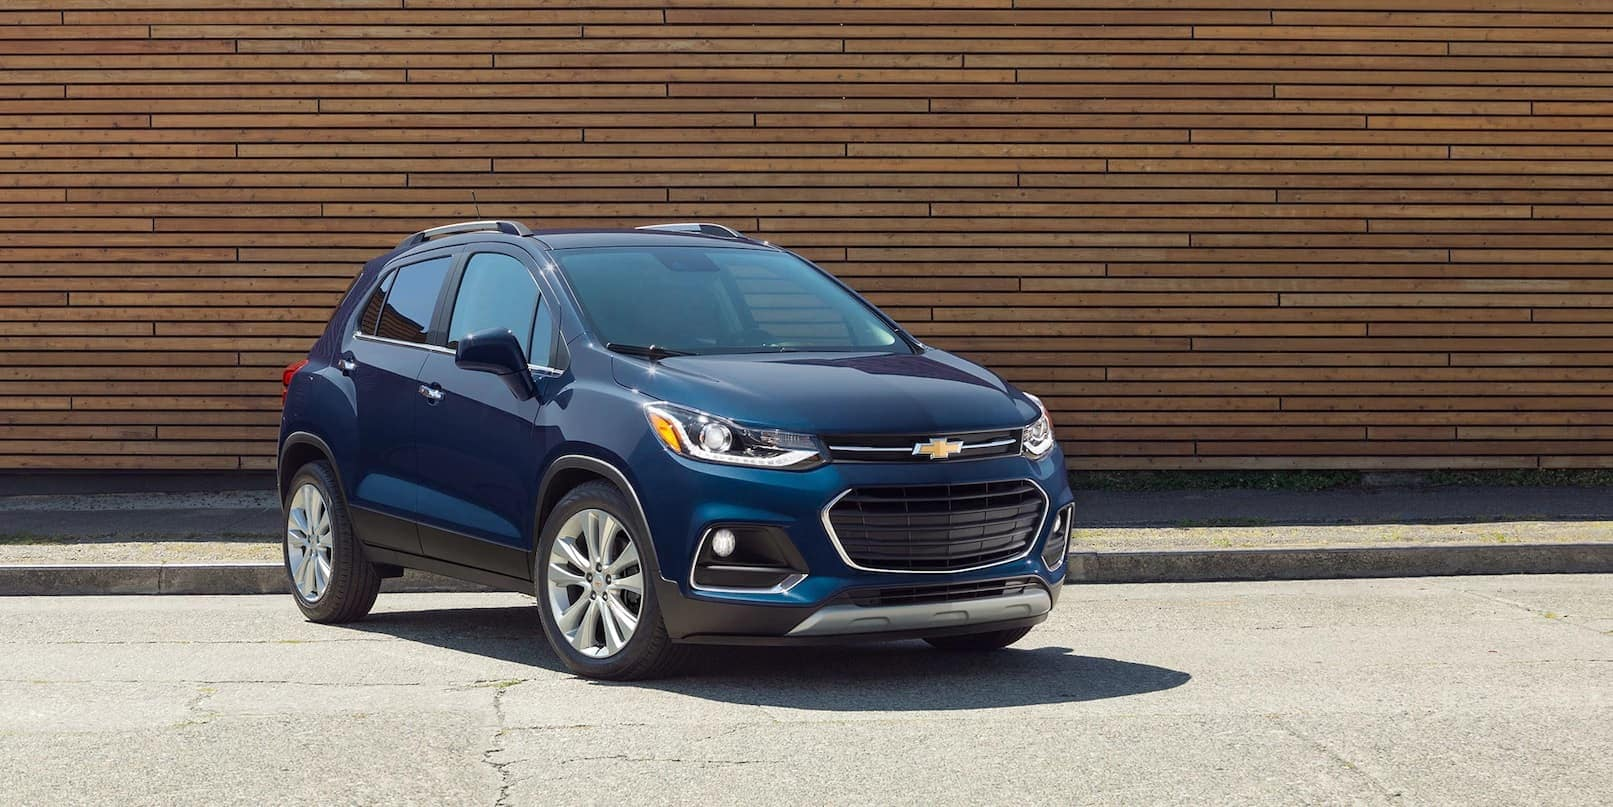 2019 Chevrolet Trax in blue parked